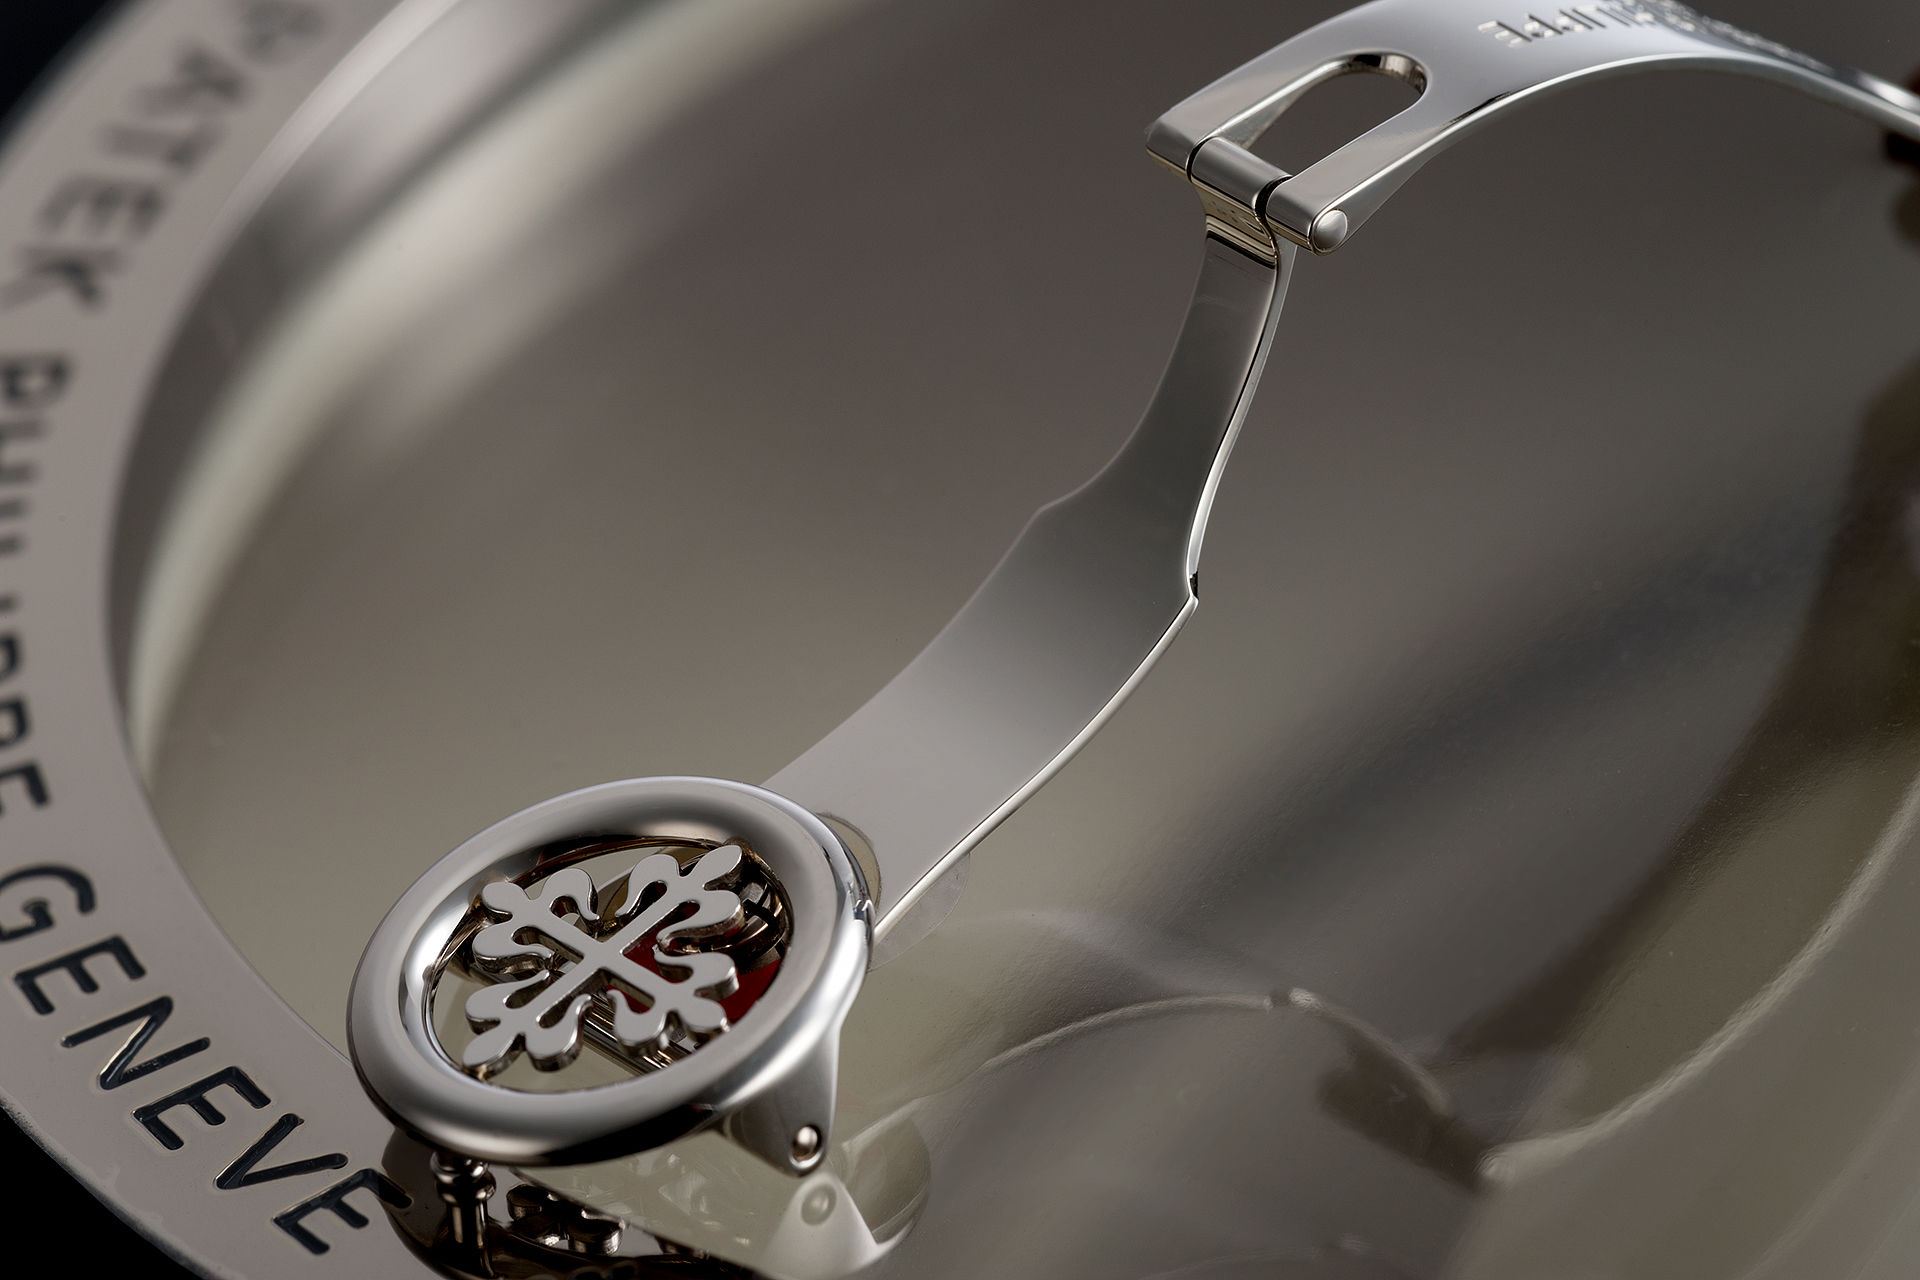 ref 5550P-001 | Platinum Limited Edition of 300 | Patek Philippe Advanced Research